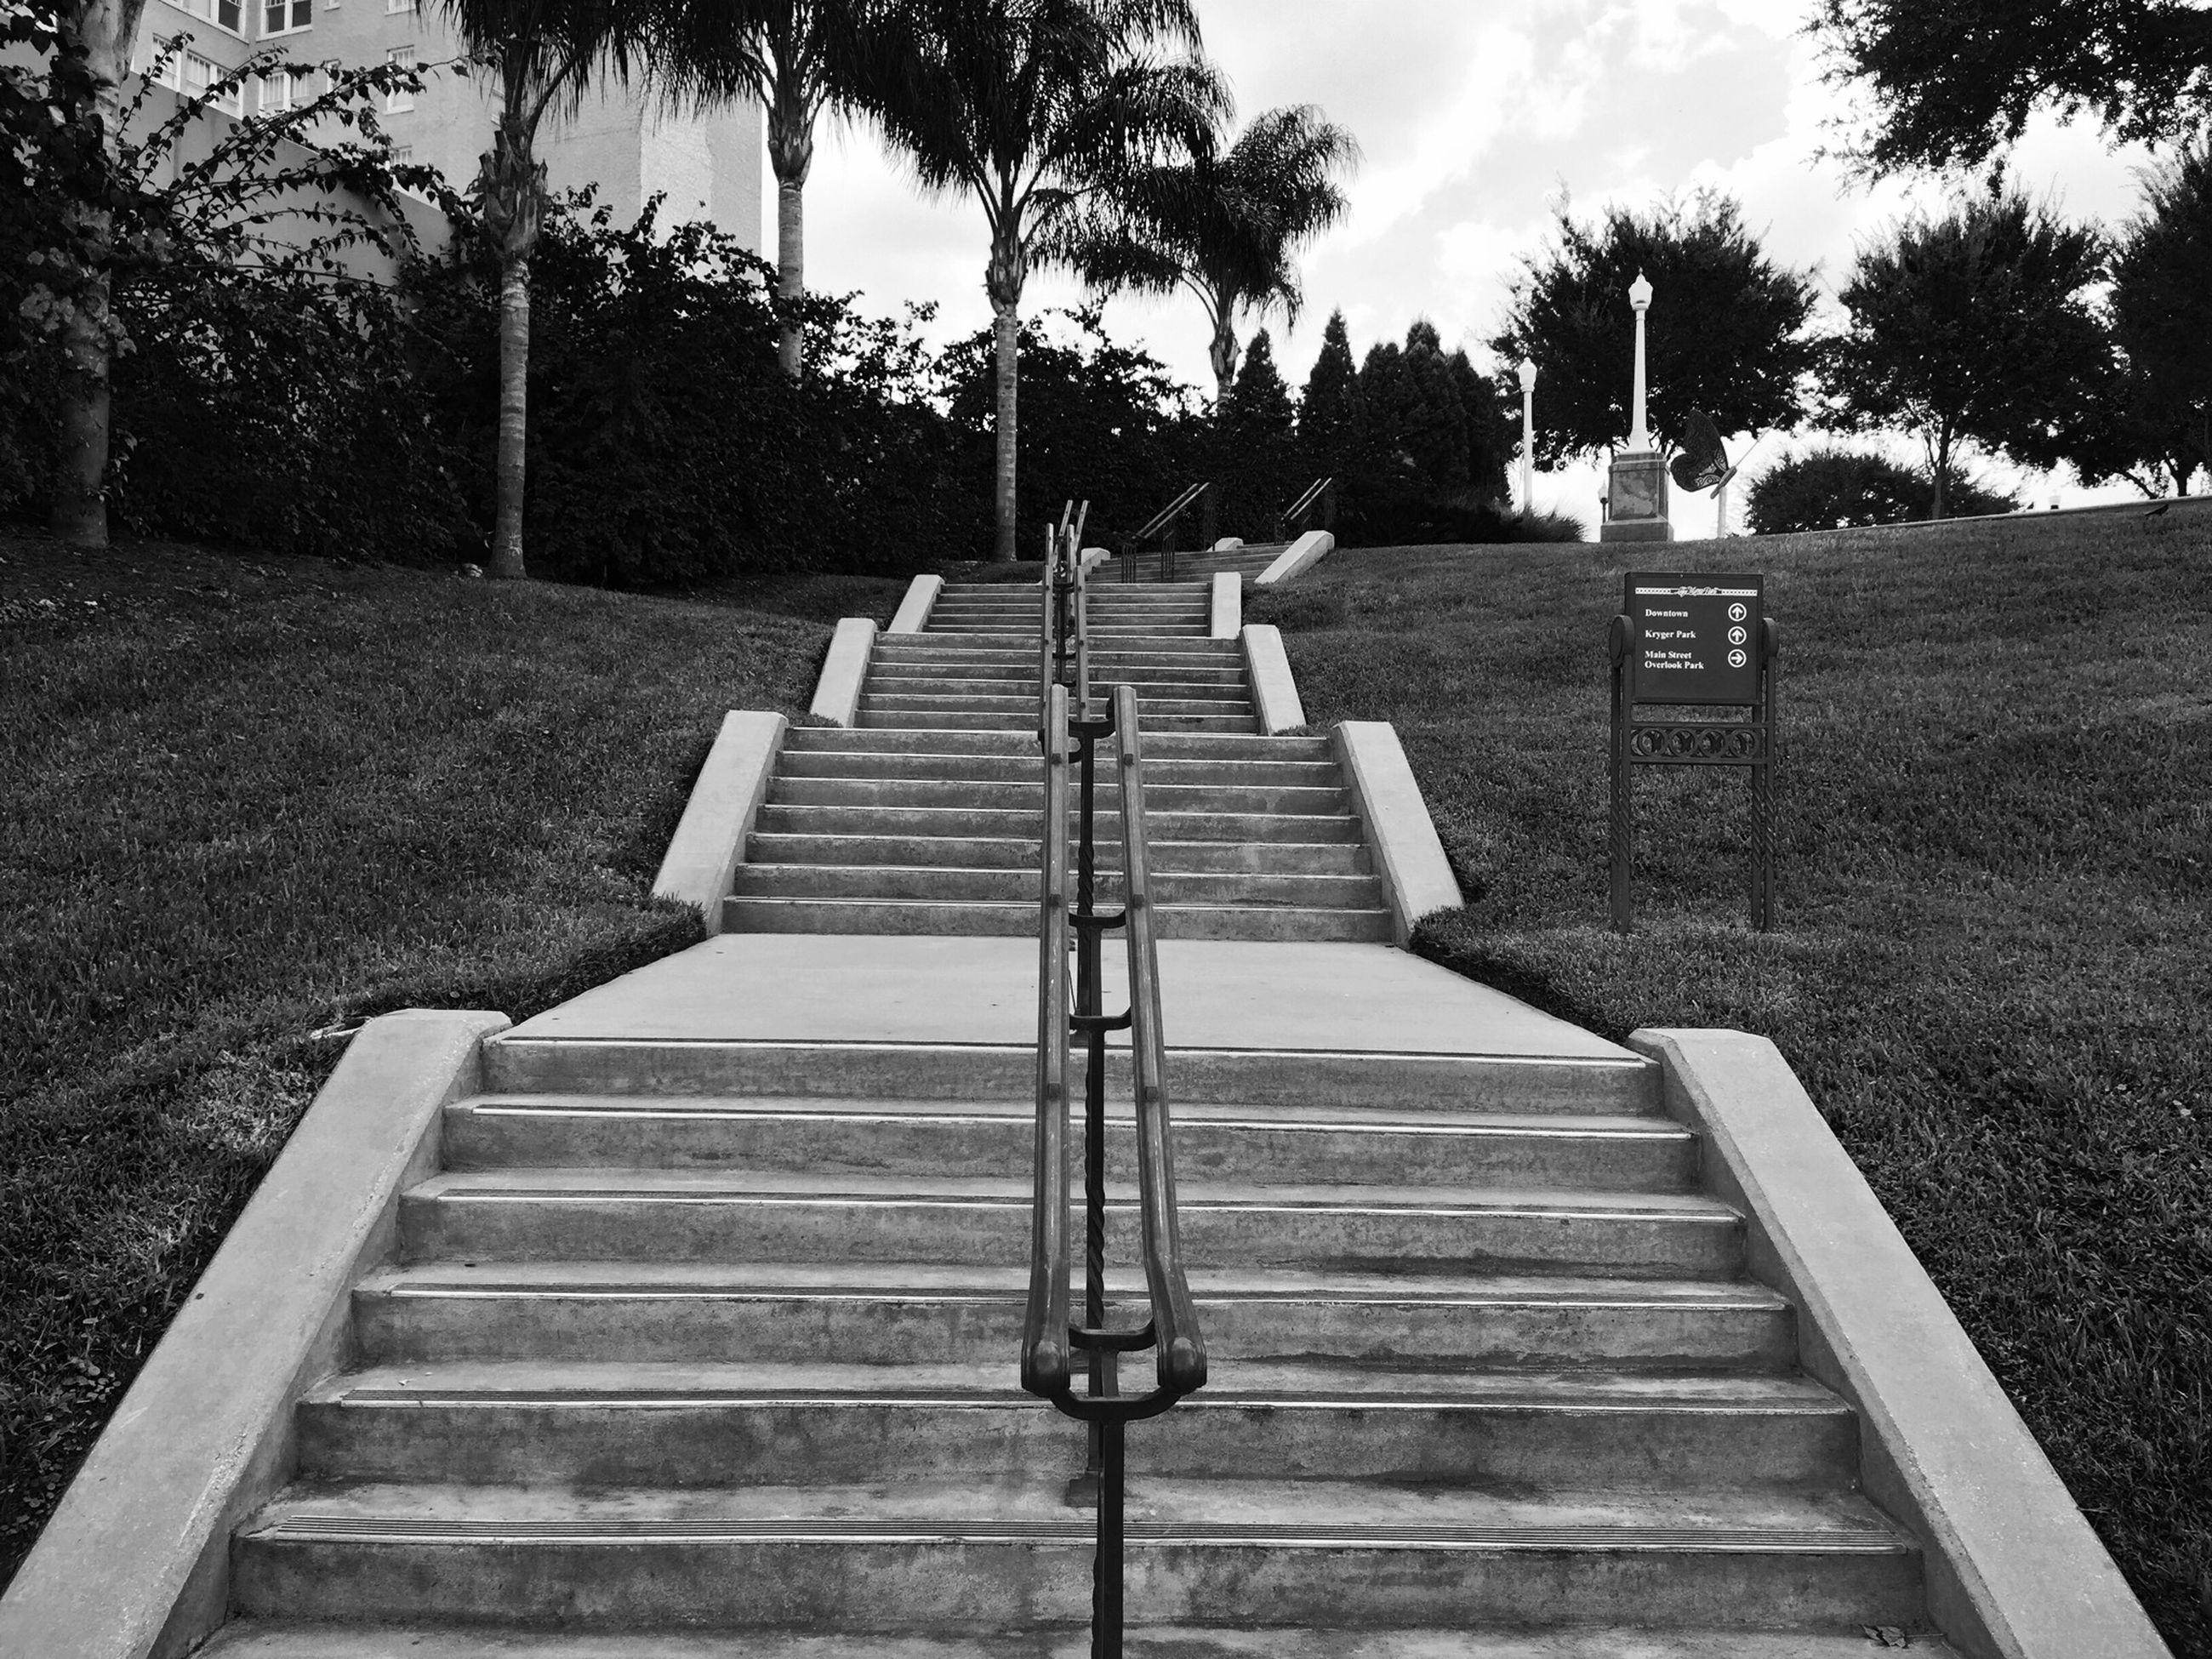 tree, steps, bench, the way forward, railing, empty, steps and staircases, sky, absence, sunlight, staircase, park - man made space, day, outdoors, shadow, grass, wood - material, park bench, nature, tranquility